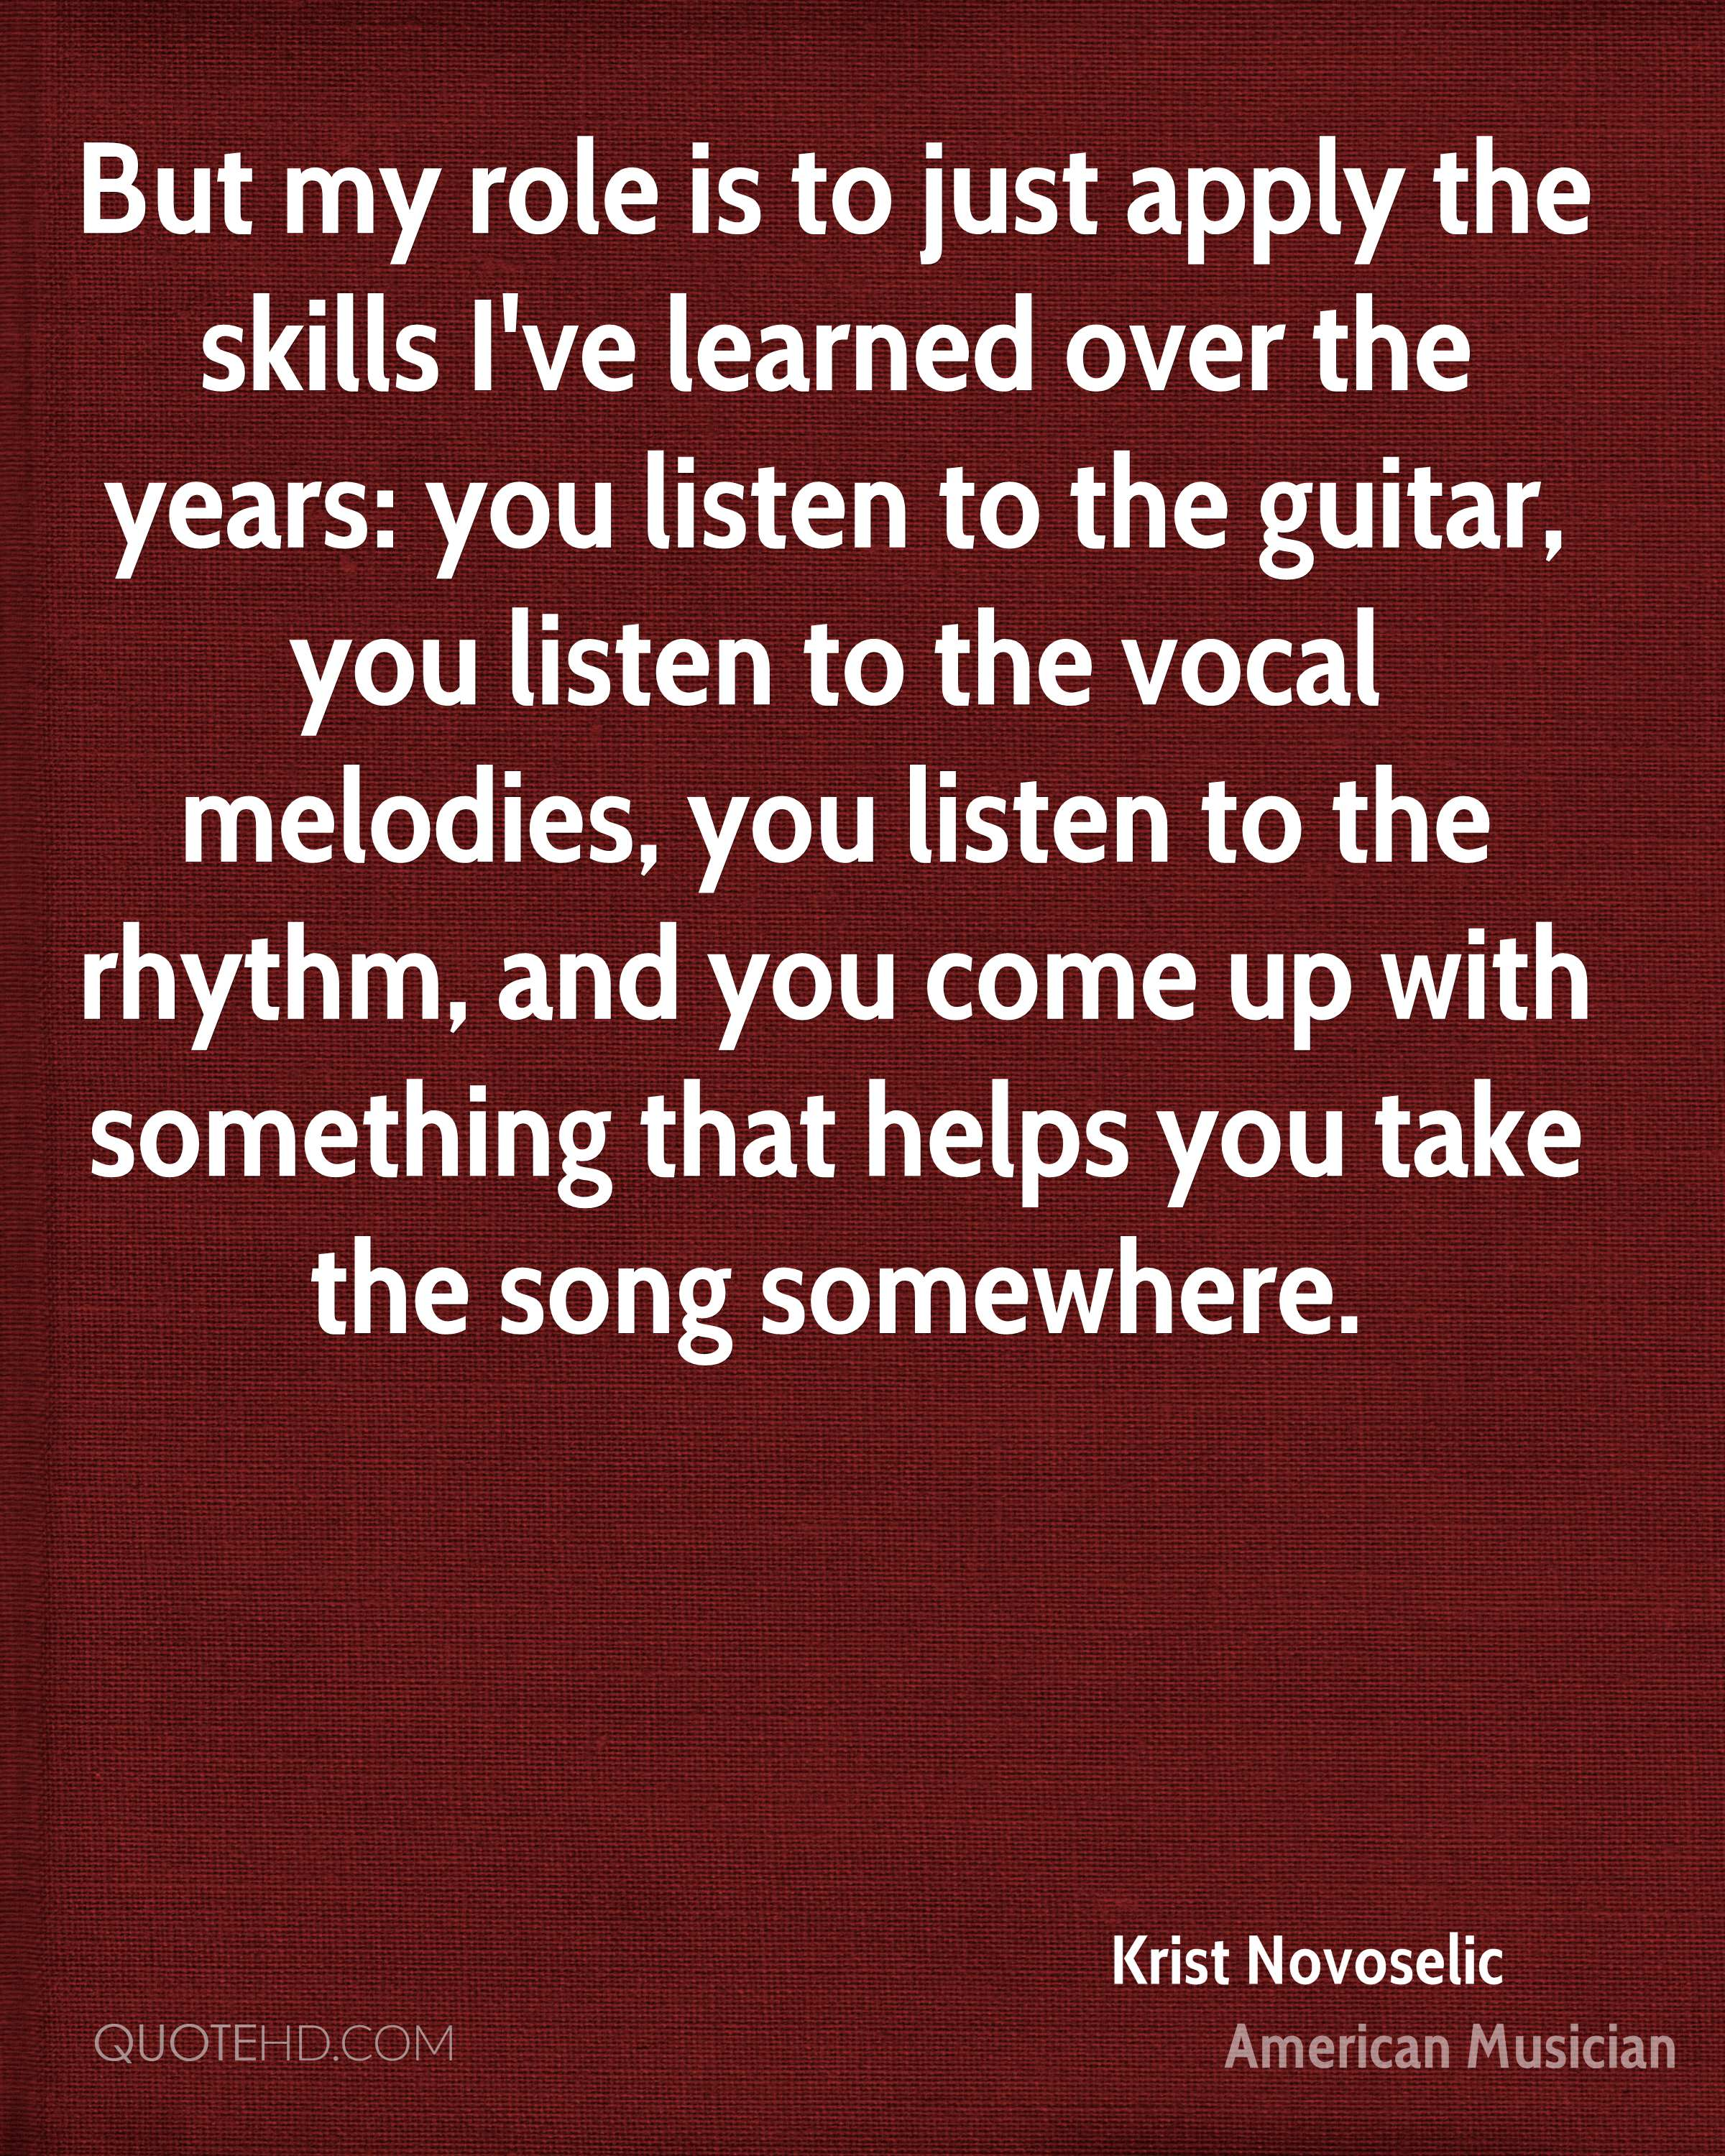 But my role is to just apply the skills I've learned over the years: you listen to the guitar, you listen to the vocal melodies, you listen to the rhythm, and you come up with something that helps you take the song somewhere.